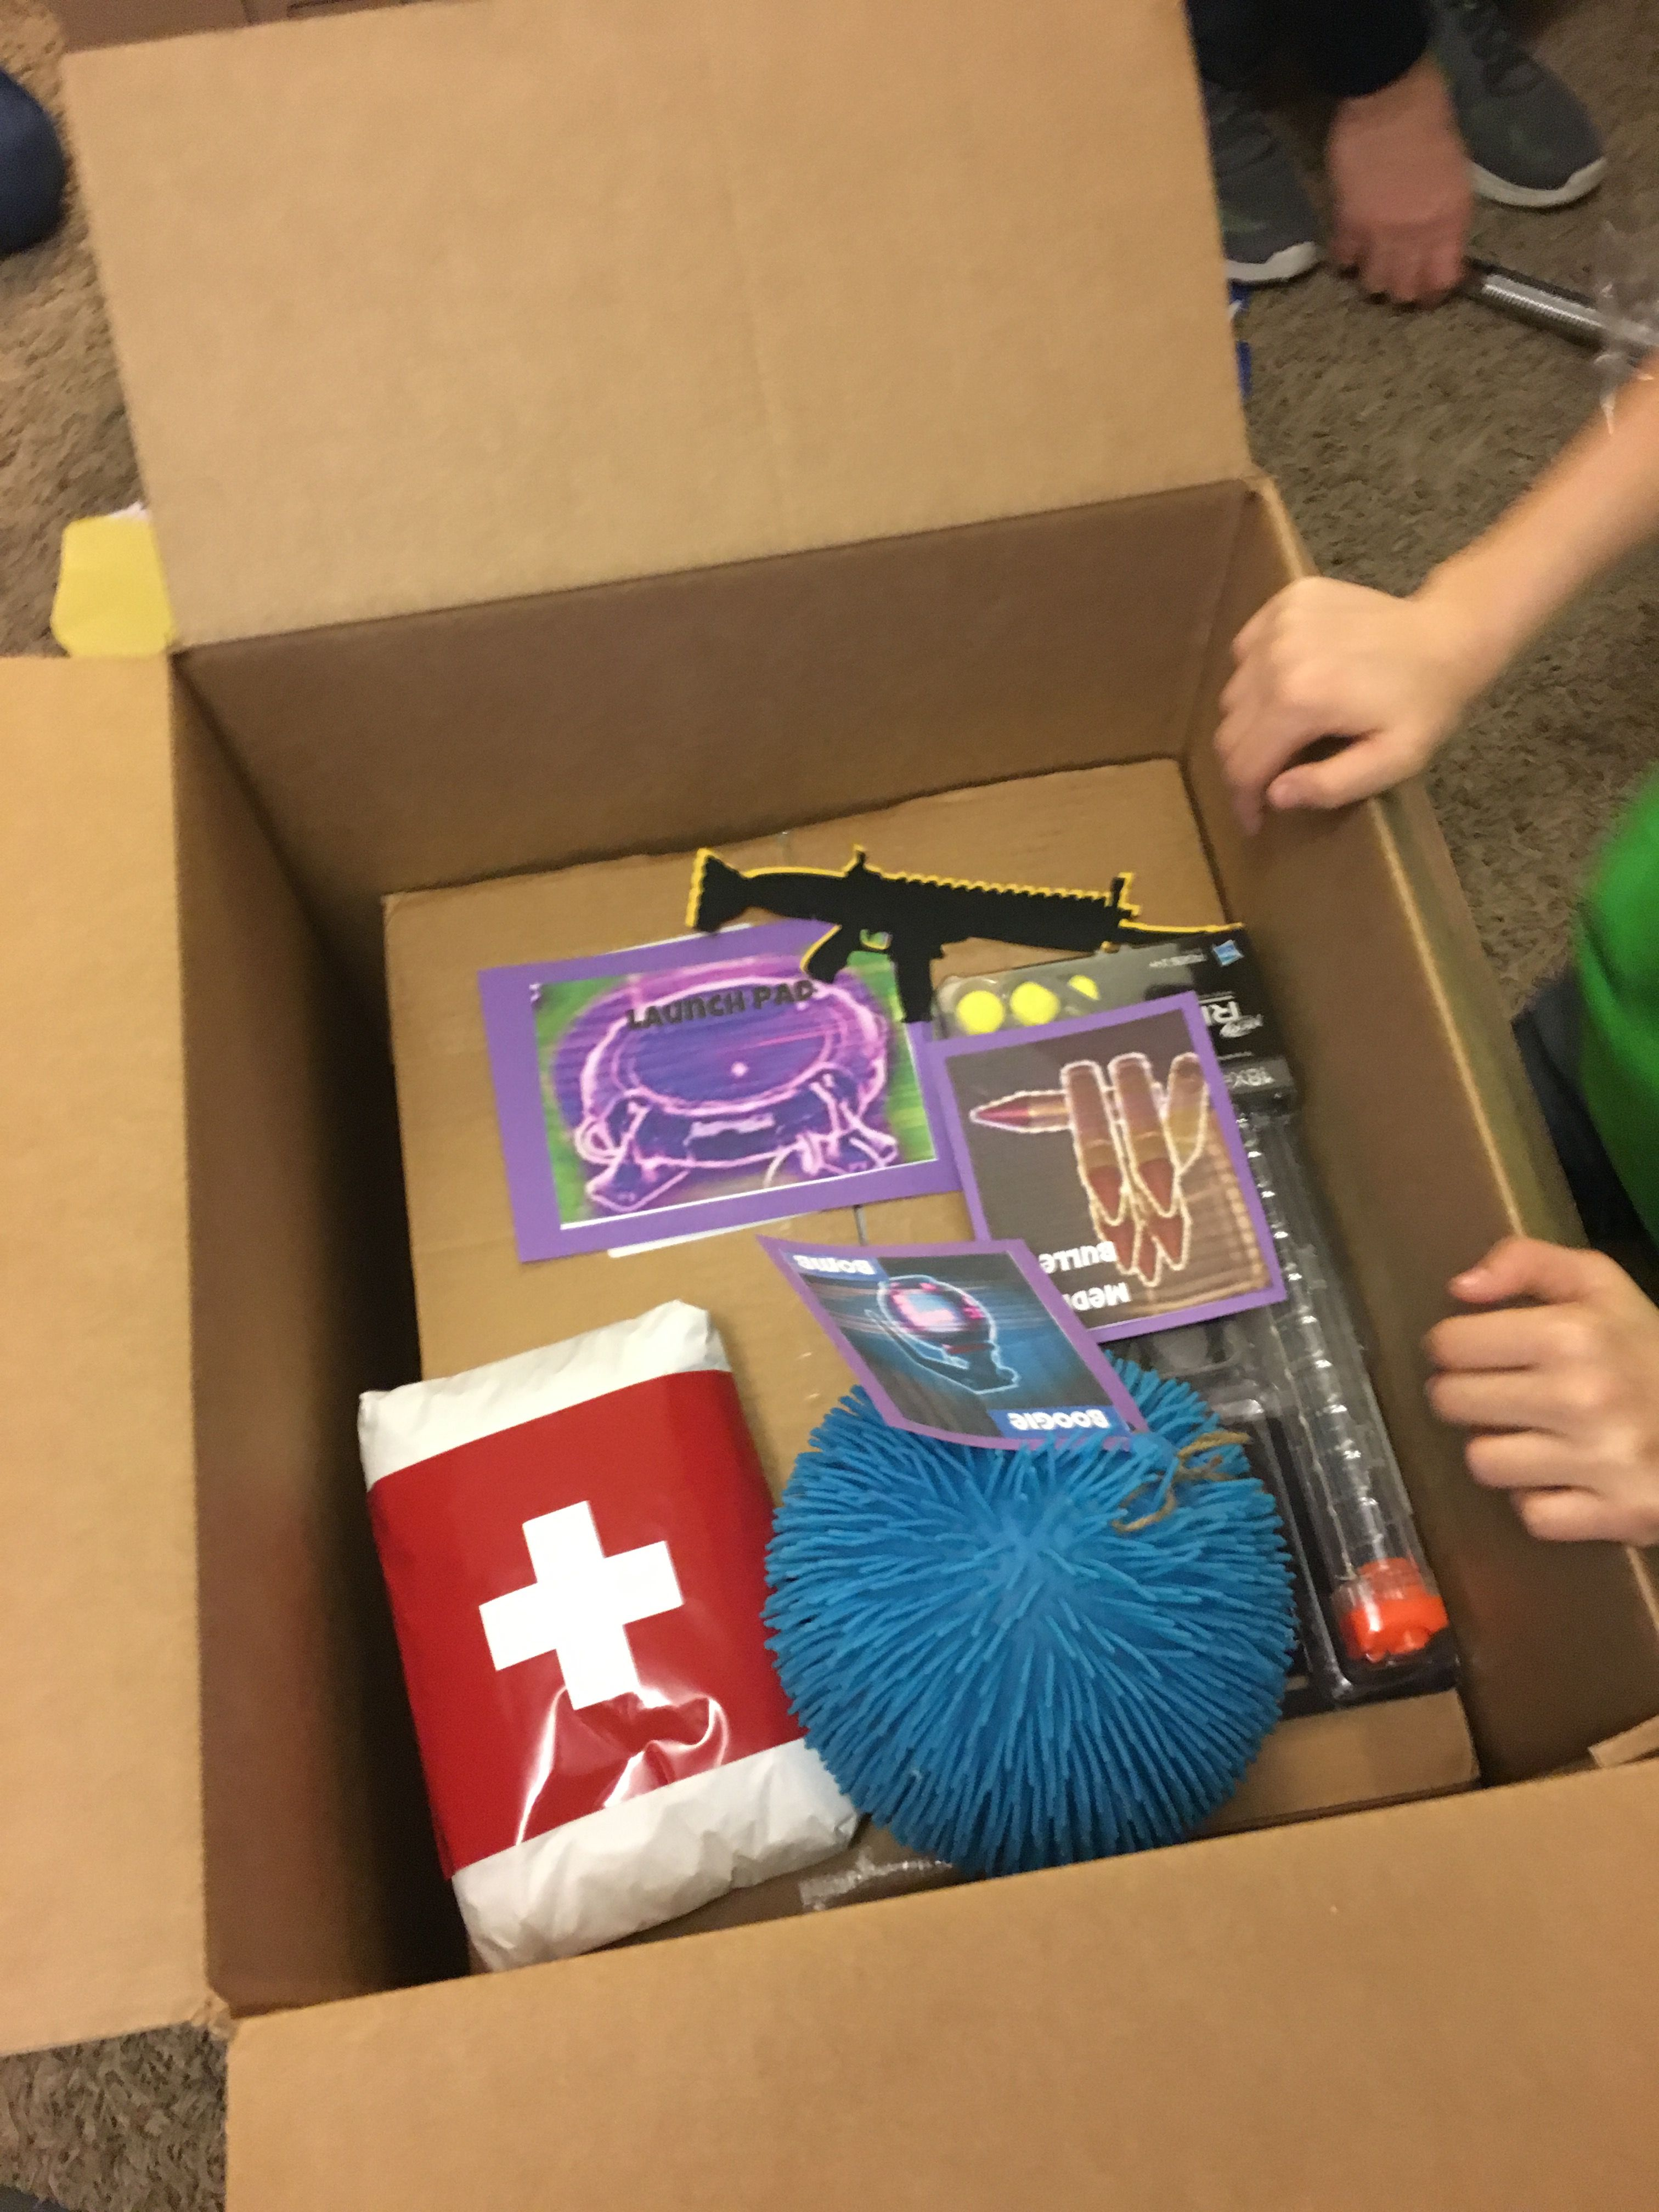 Fortnite supply drop. Boogie bomb ball, Med kit (wrapped